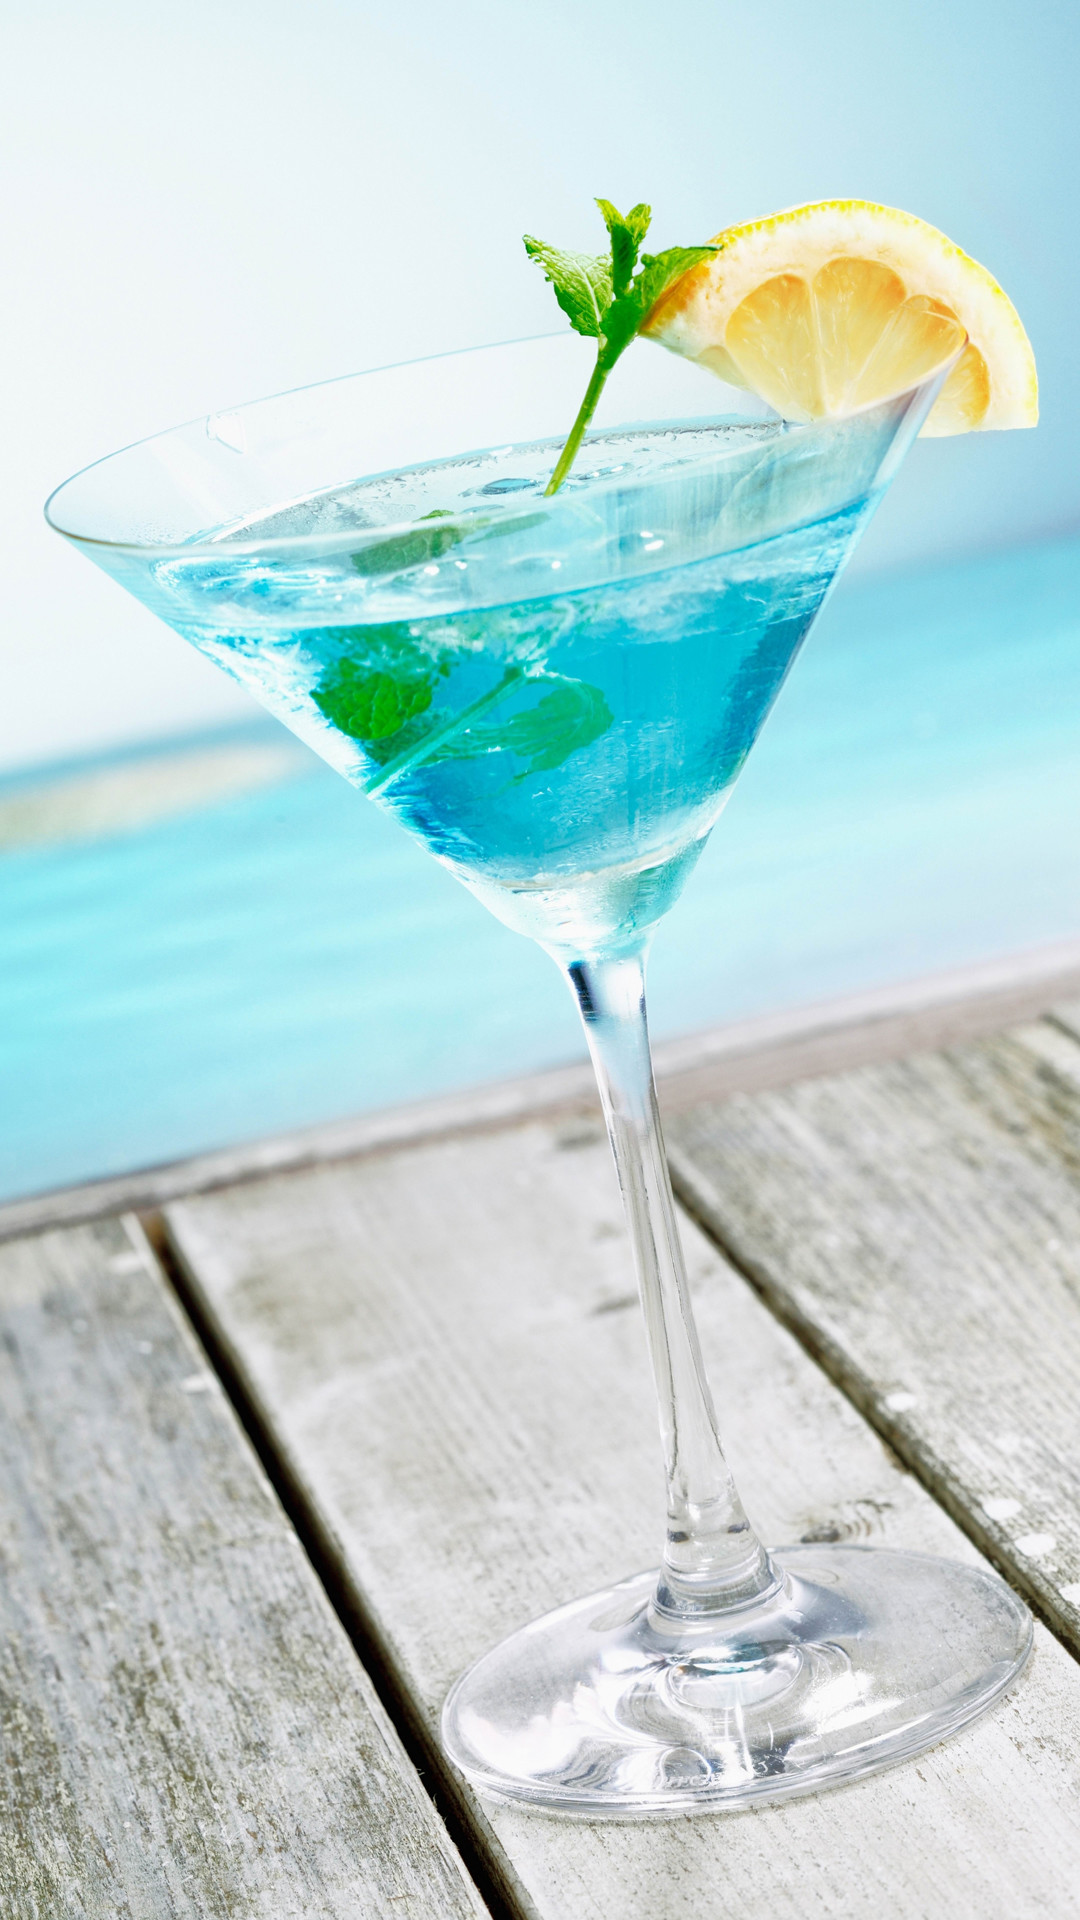 Mint Cocktail Blue Pool Android Wallpaper …